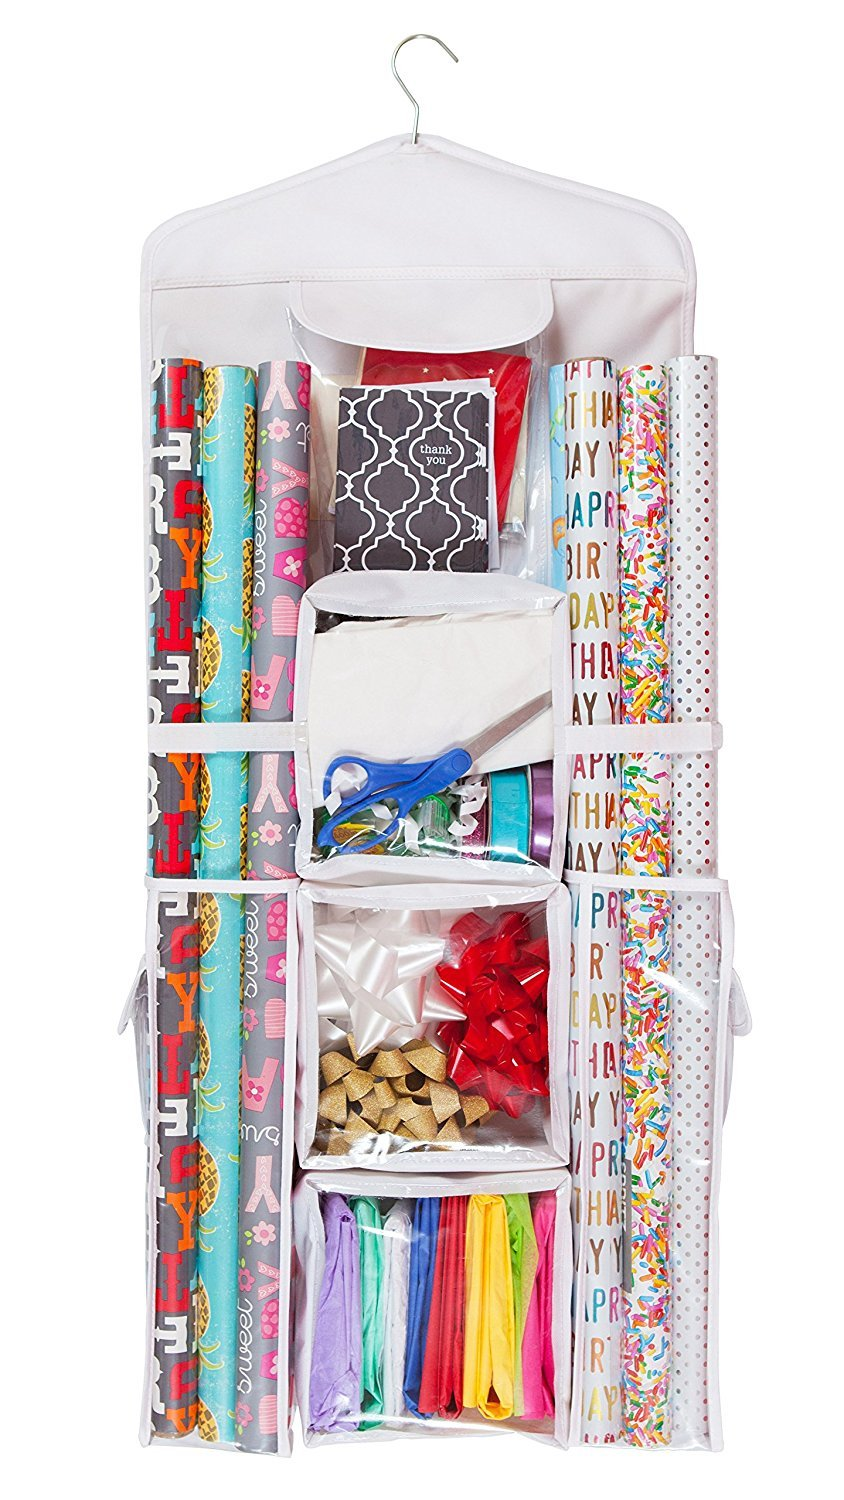 Double Sided Hanging Gift Wrap & Bag Organizer Storage COMINHKPR115962